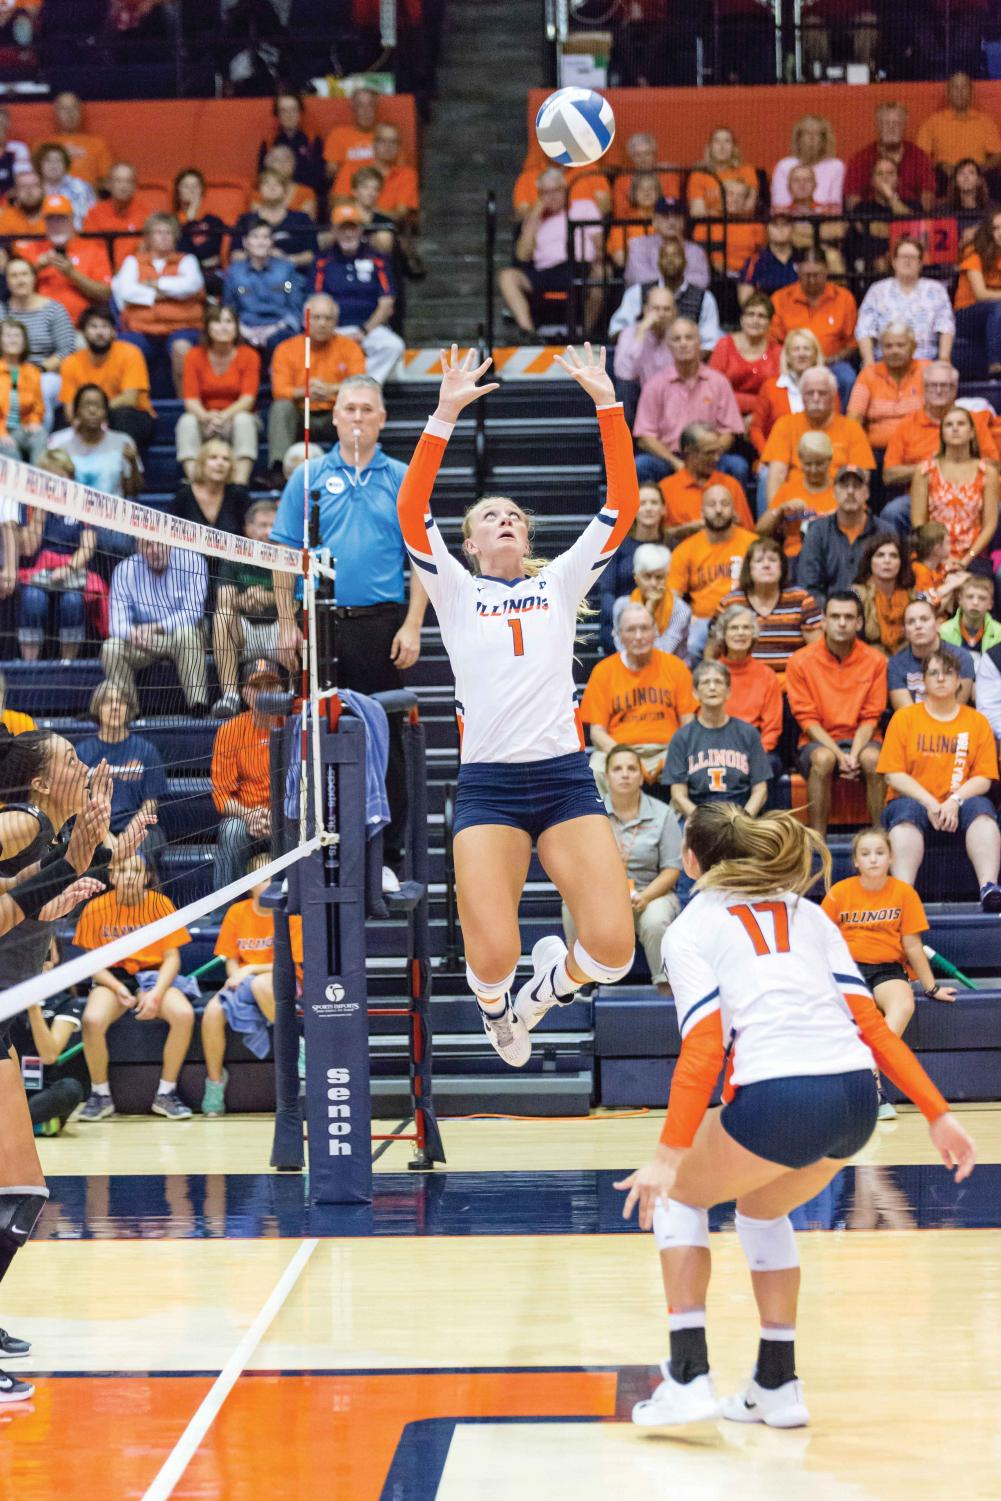 Illinois setter Jordyn Poulter (1) jumps up to set the ball during the match against Purdue at Huff Hall on Friday, October 6. The Illini lost 3-0.